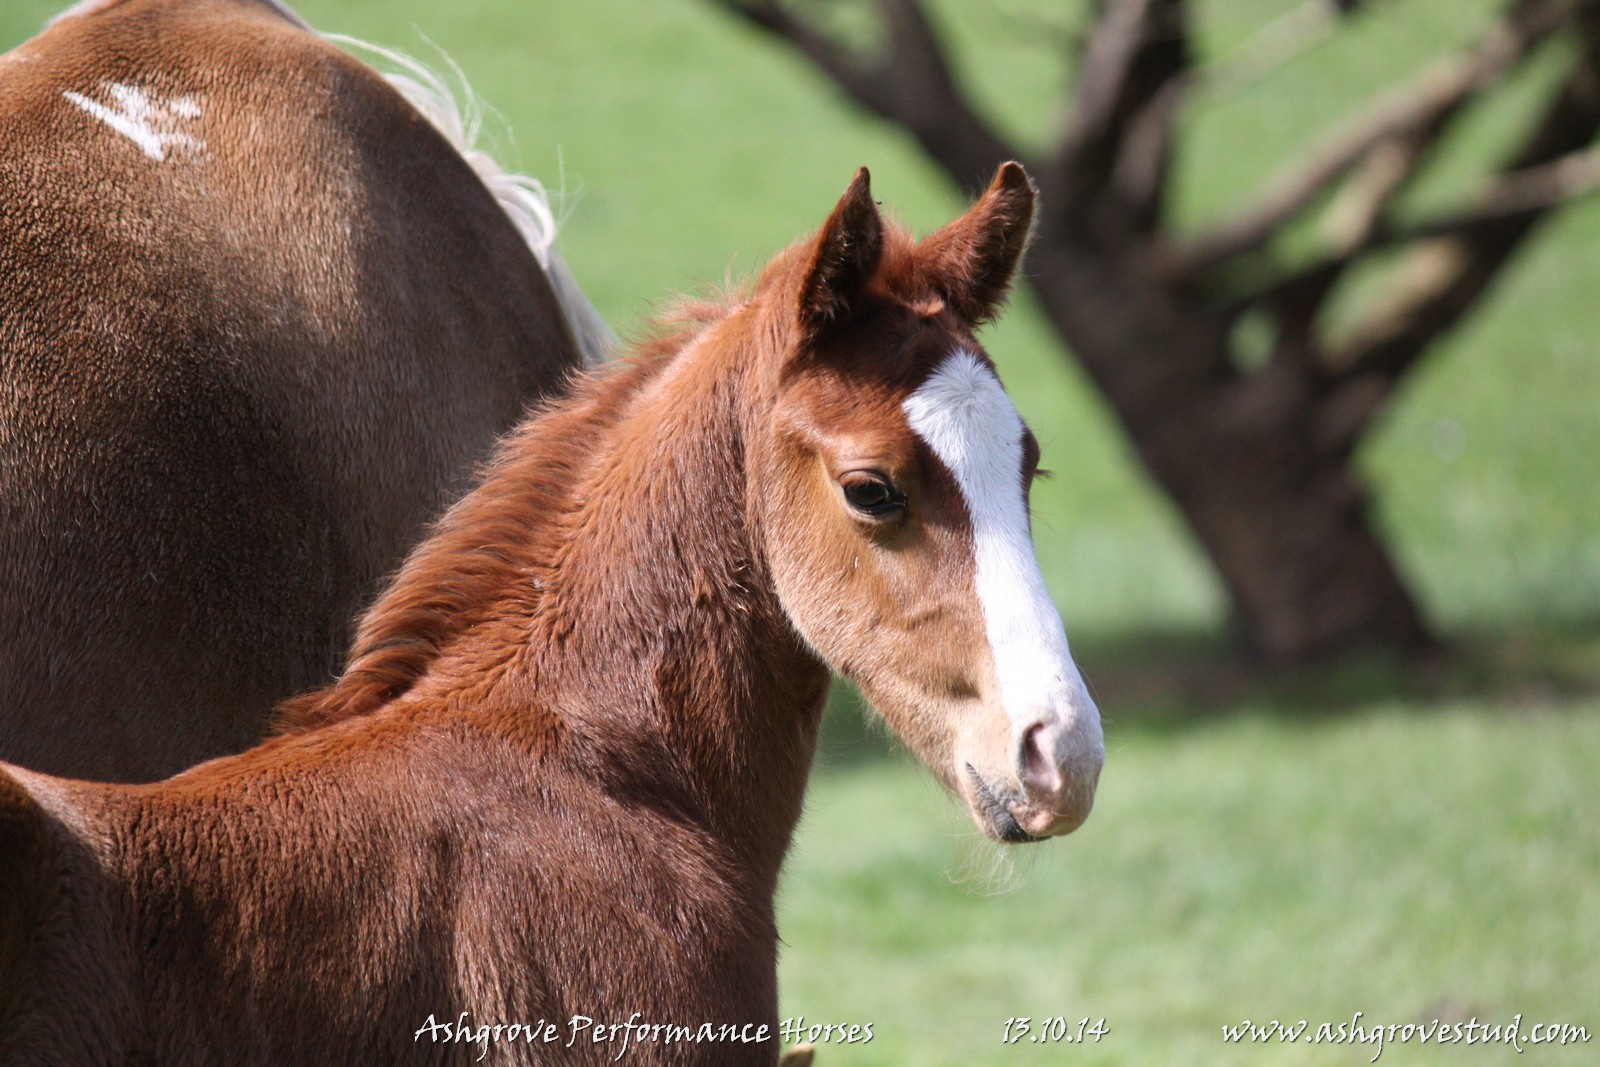 Foals and yearlings 13.10.14 362